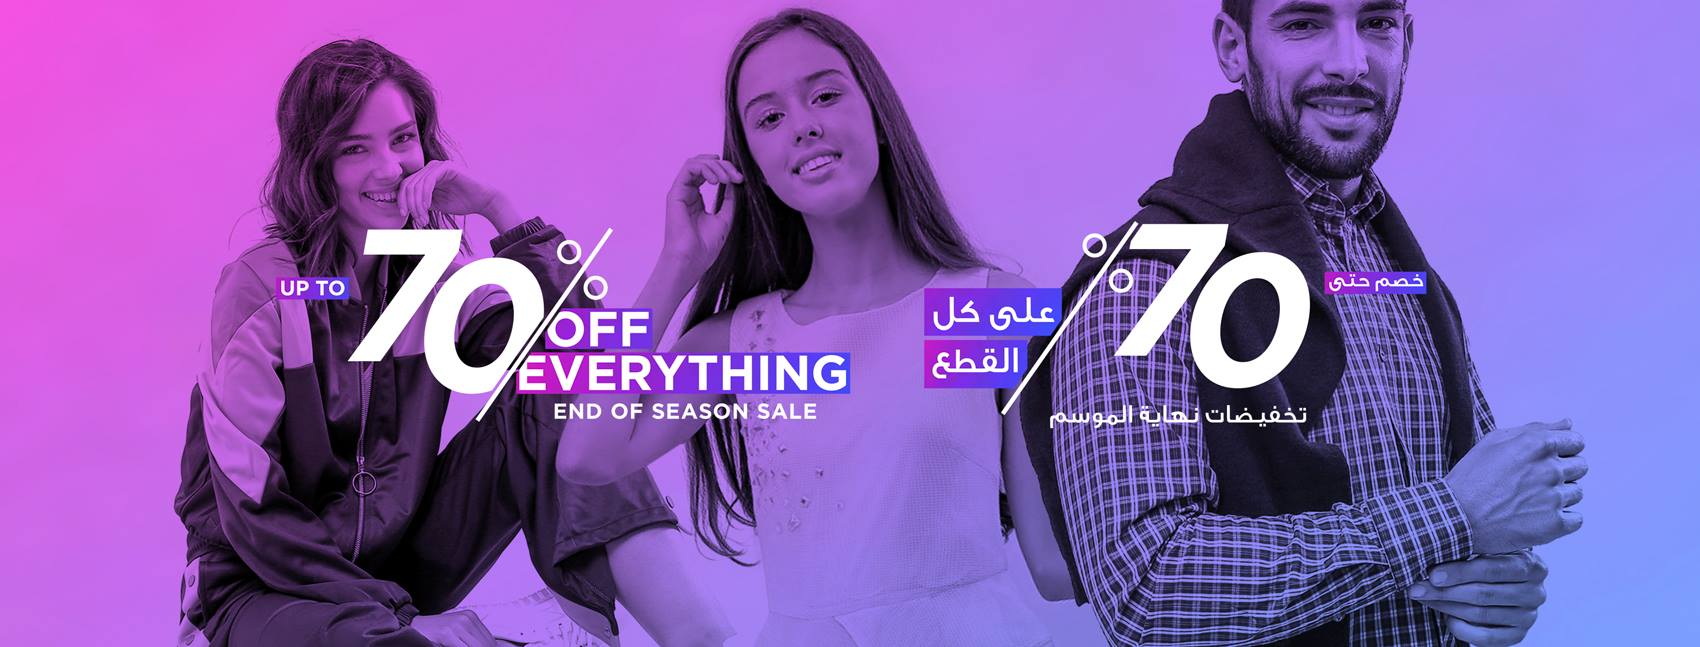 Elabelz End of Season Sale - Dubaisavers